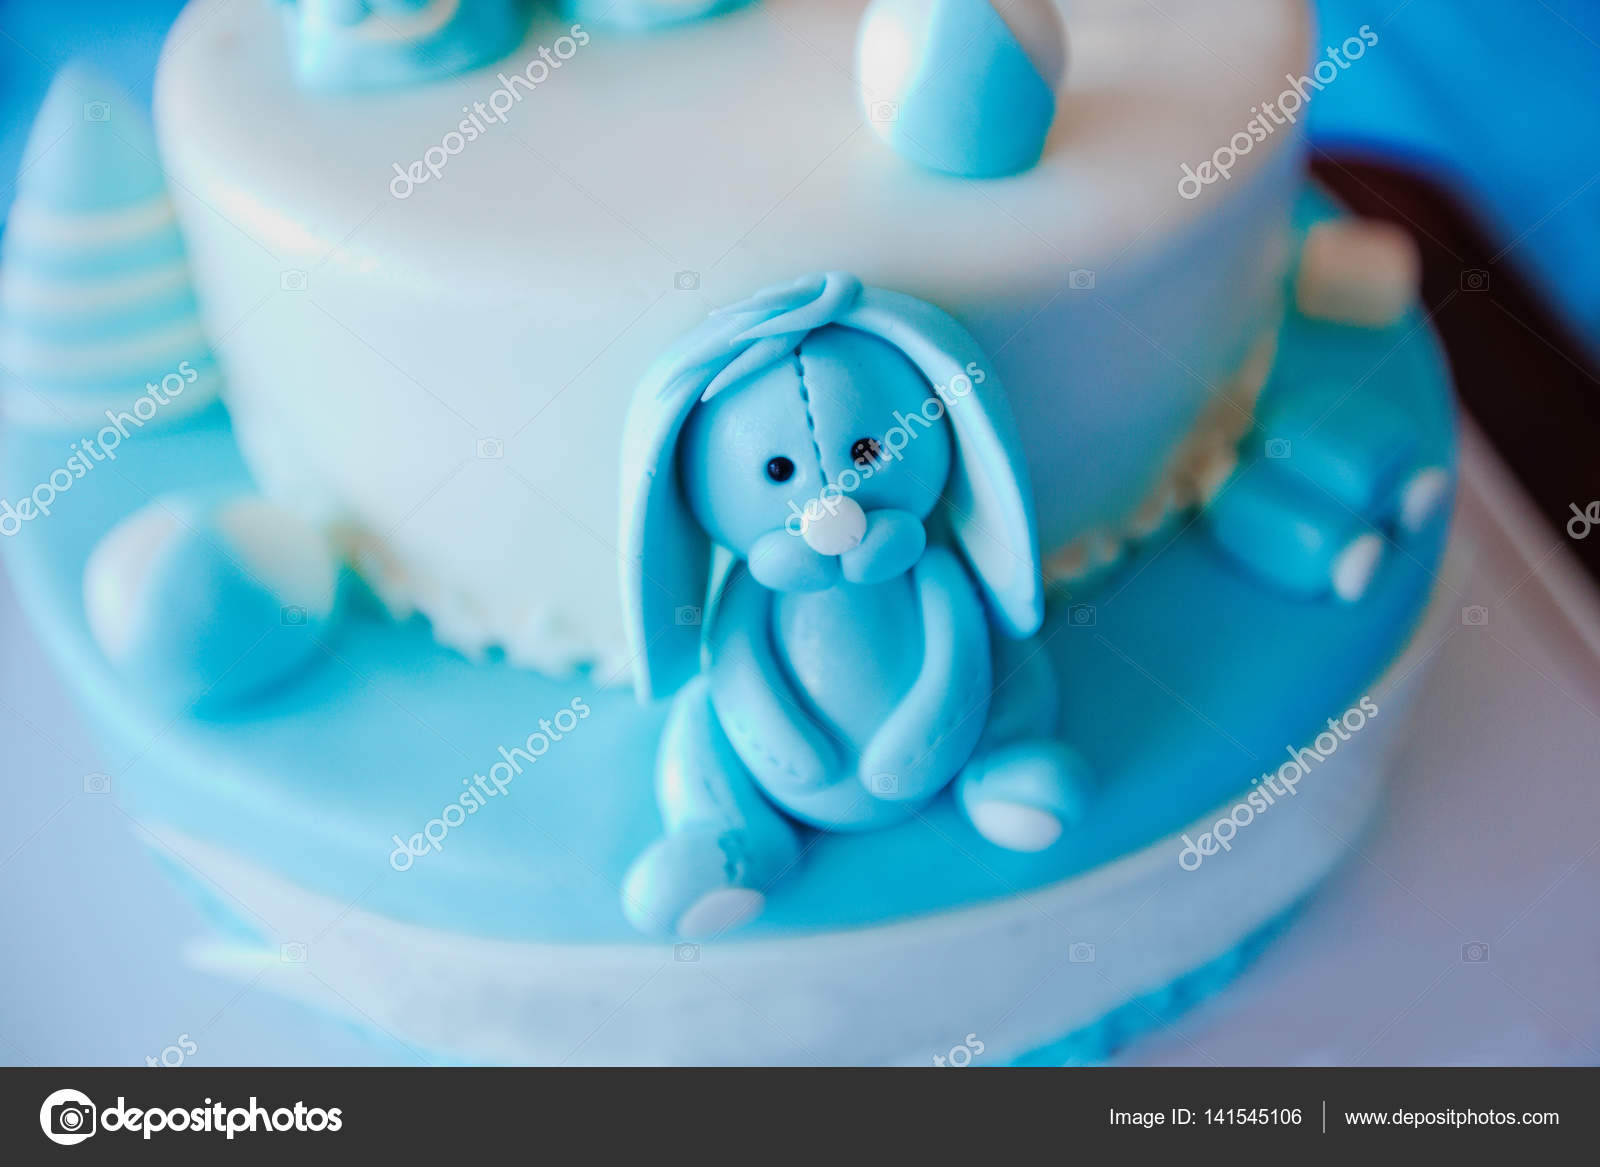 Awe Inspiring Birthday Cake For 1 Year Old Boy Stock Photo C Adaco 141545106 Personalised Birthday Cards Veneteletsinfo